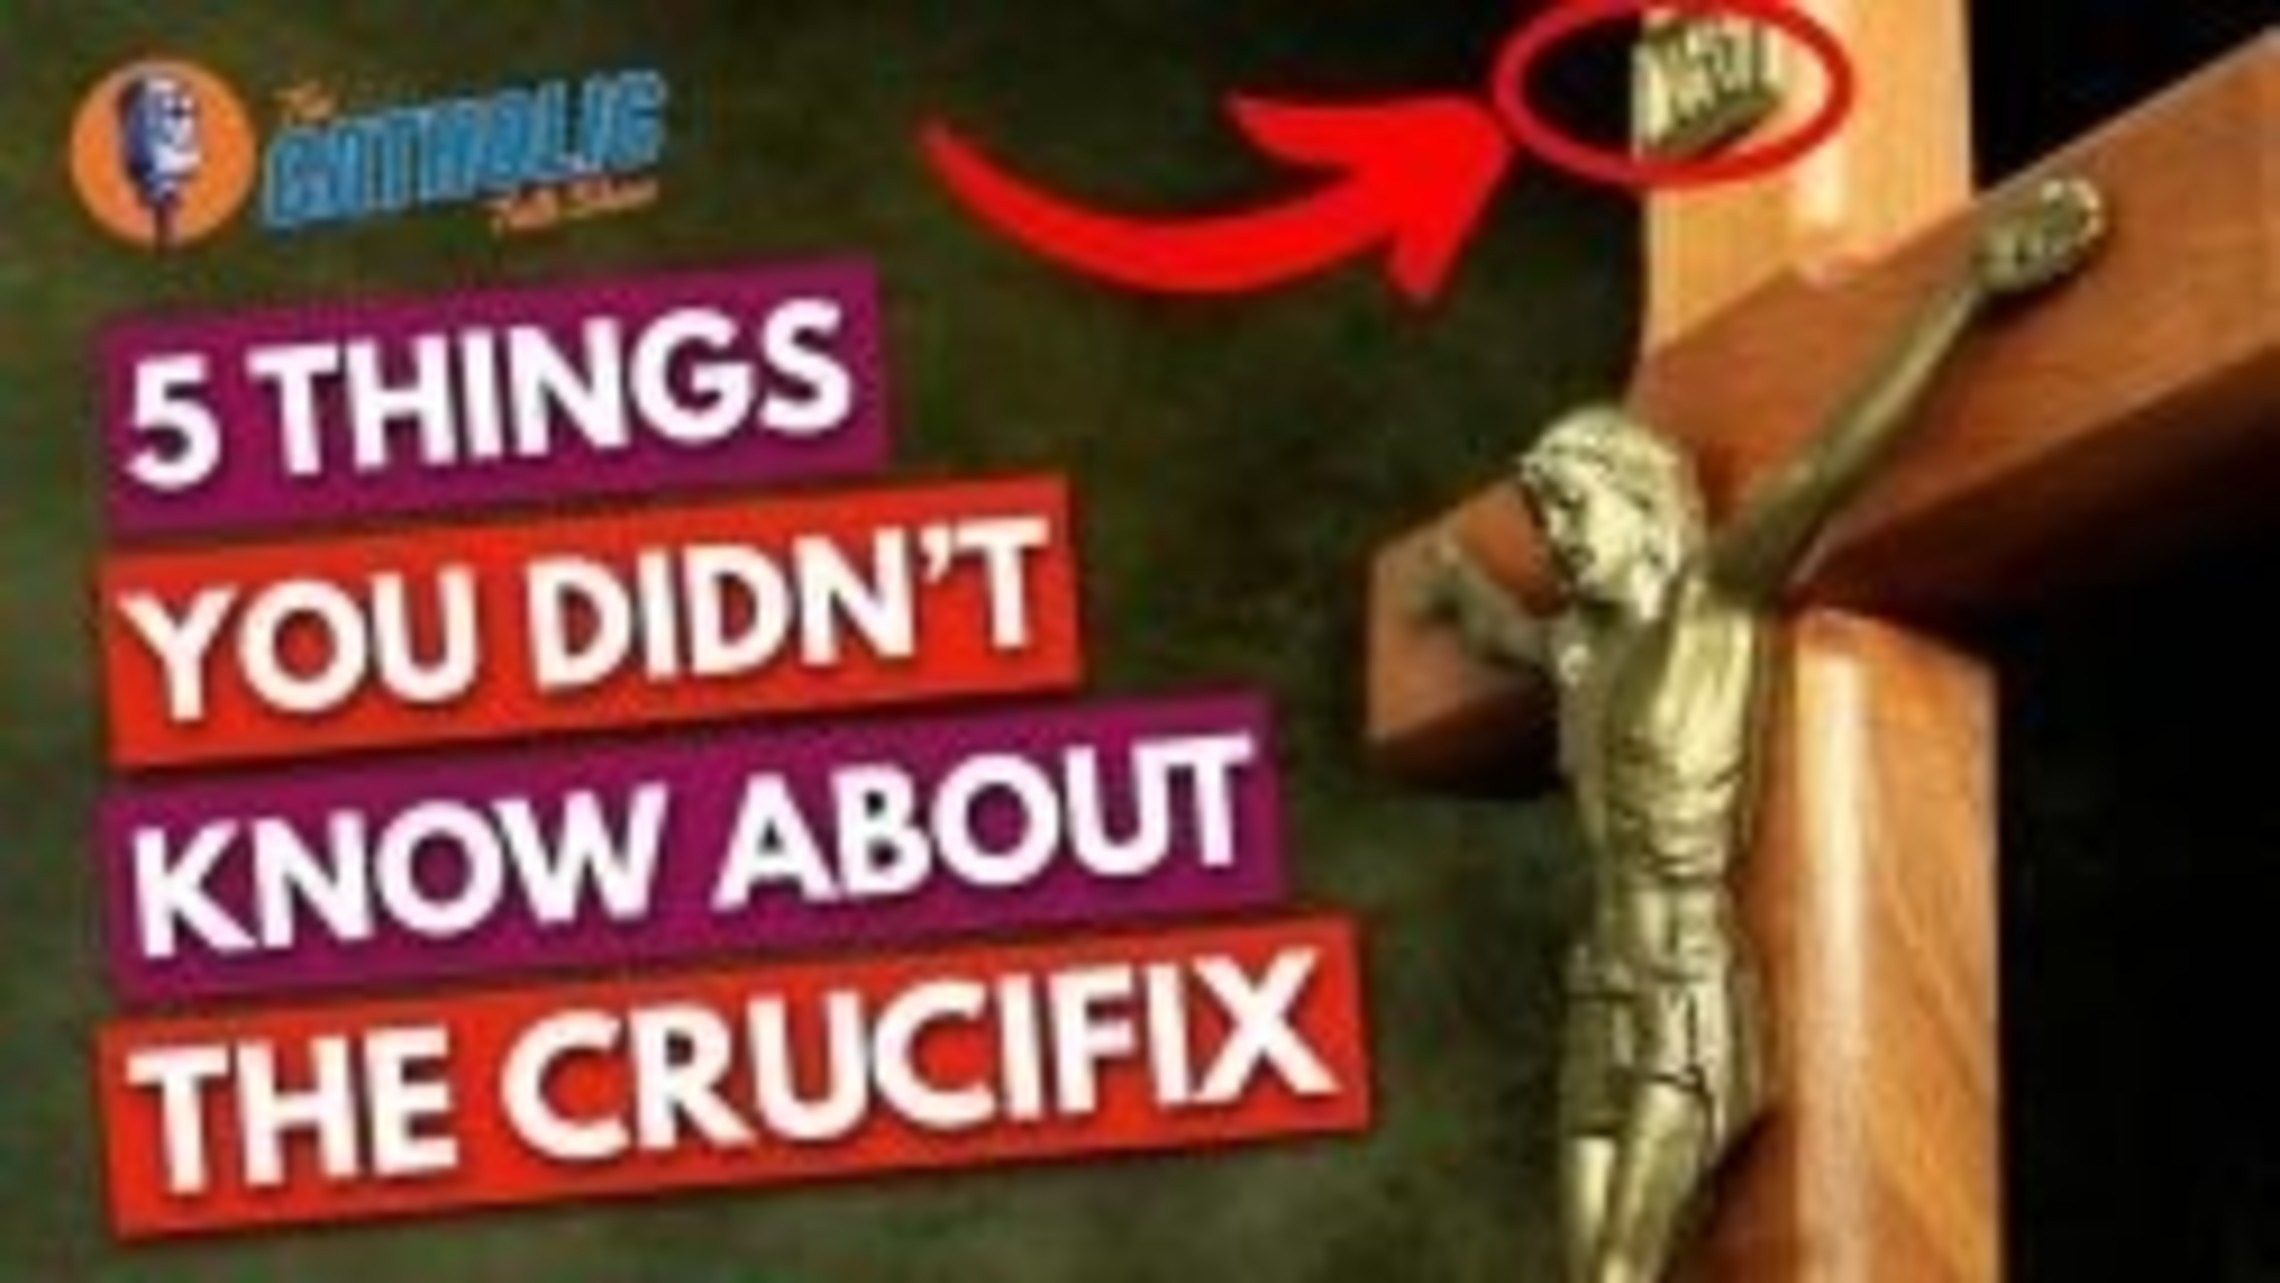 5 Things You Didn't Know About The Crucifix